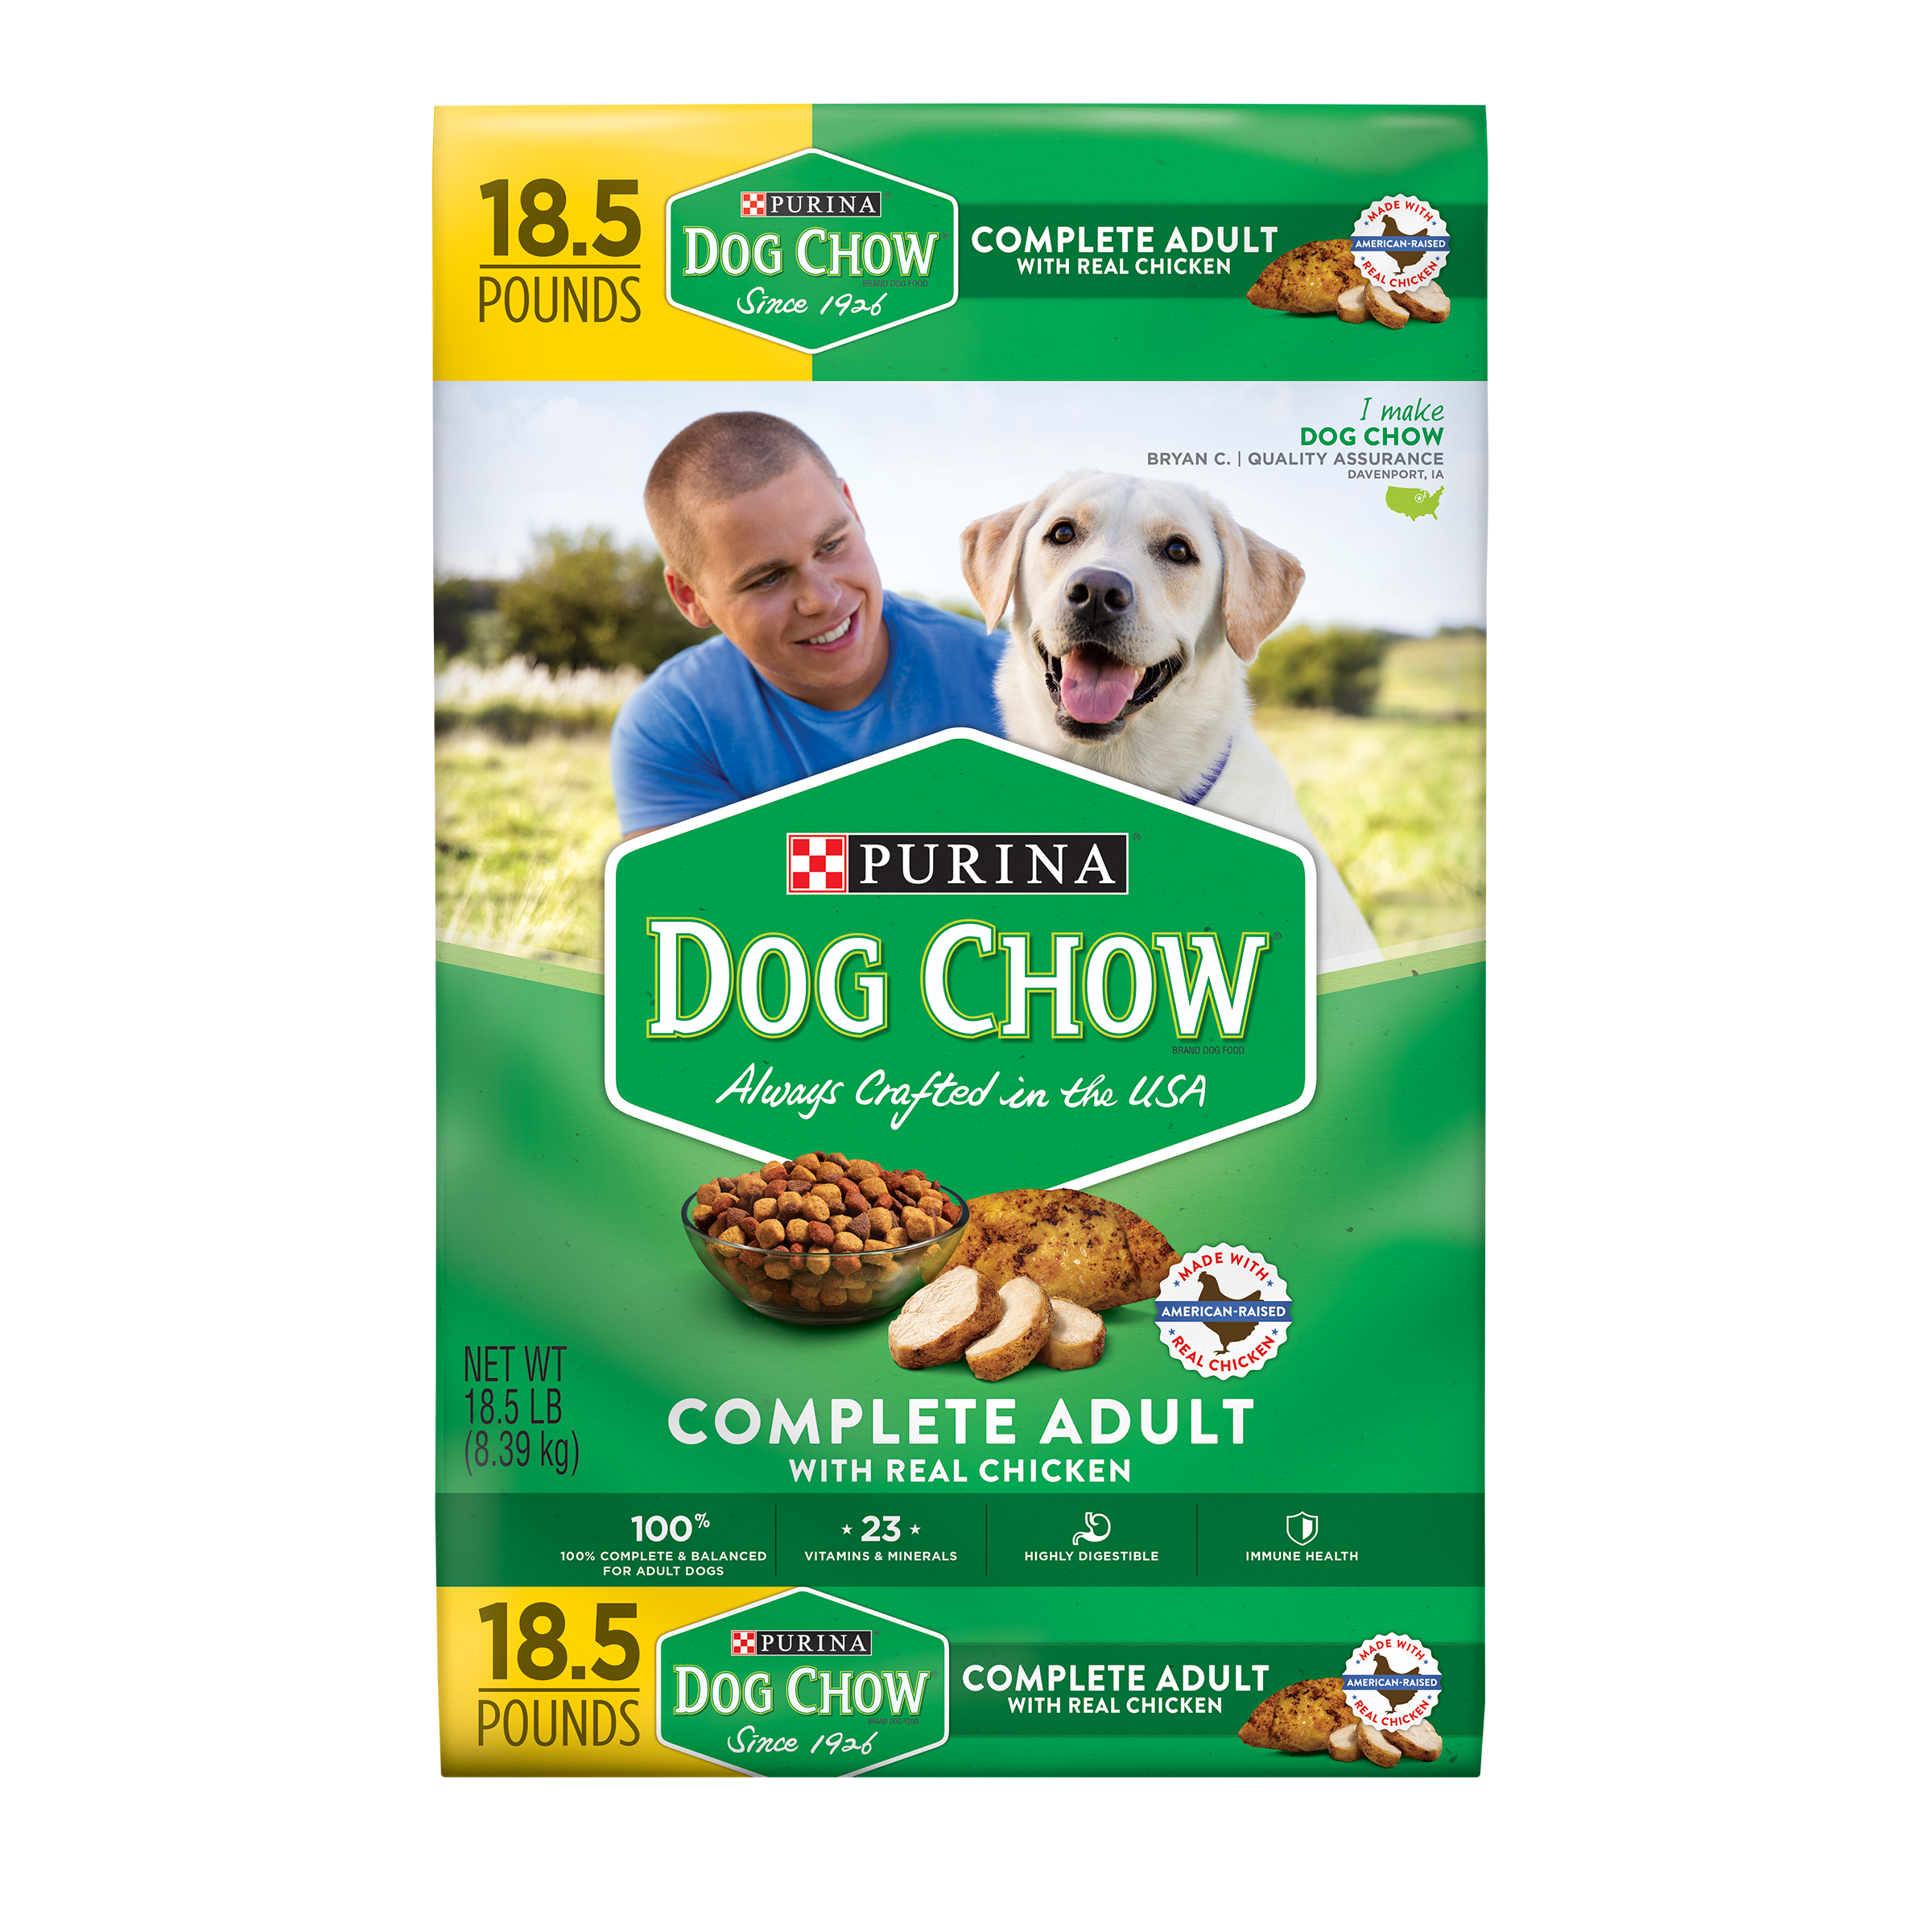 Purina Dog Chow Dry Dog Food; Complete Adult With Real Chicken - 18.5 lb. Bag